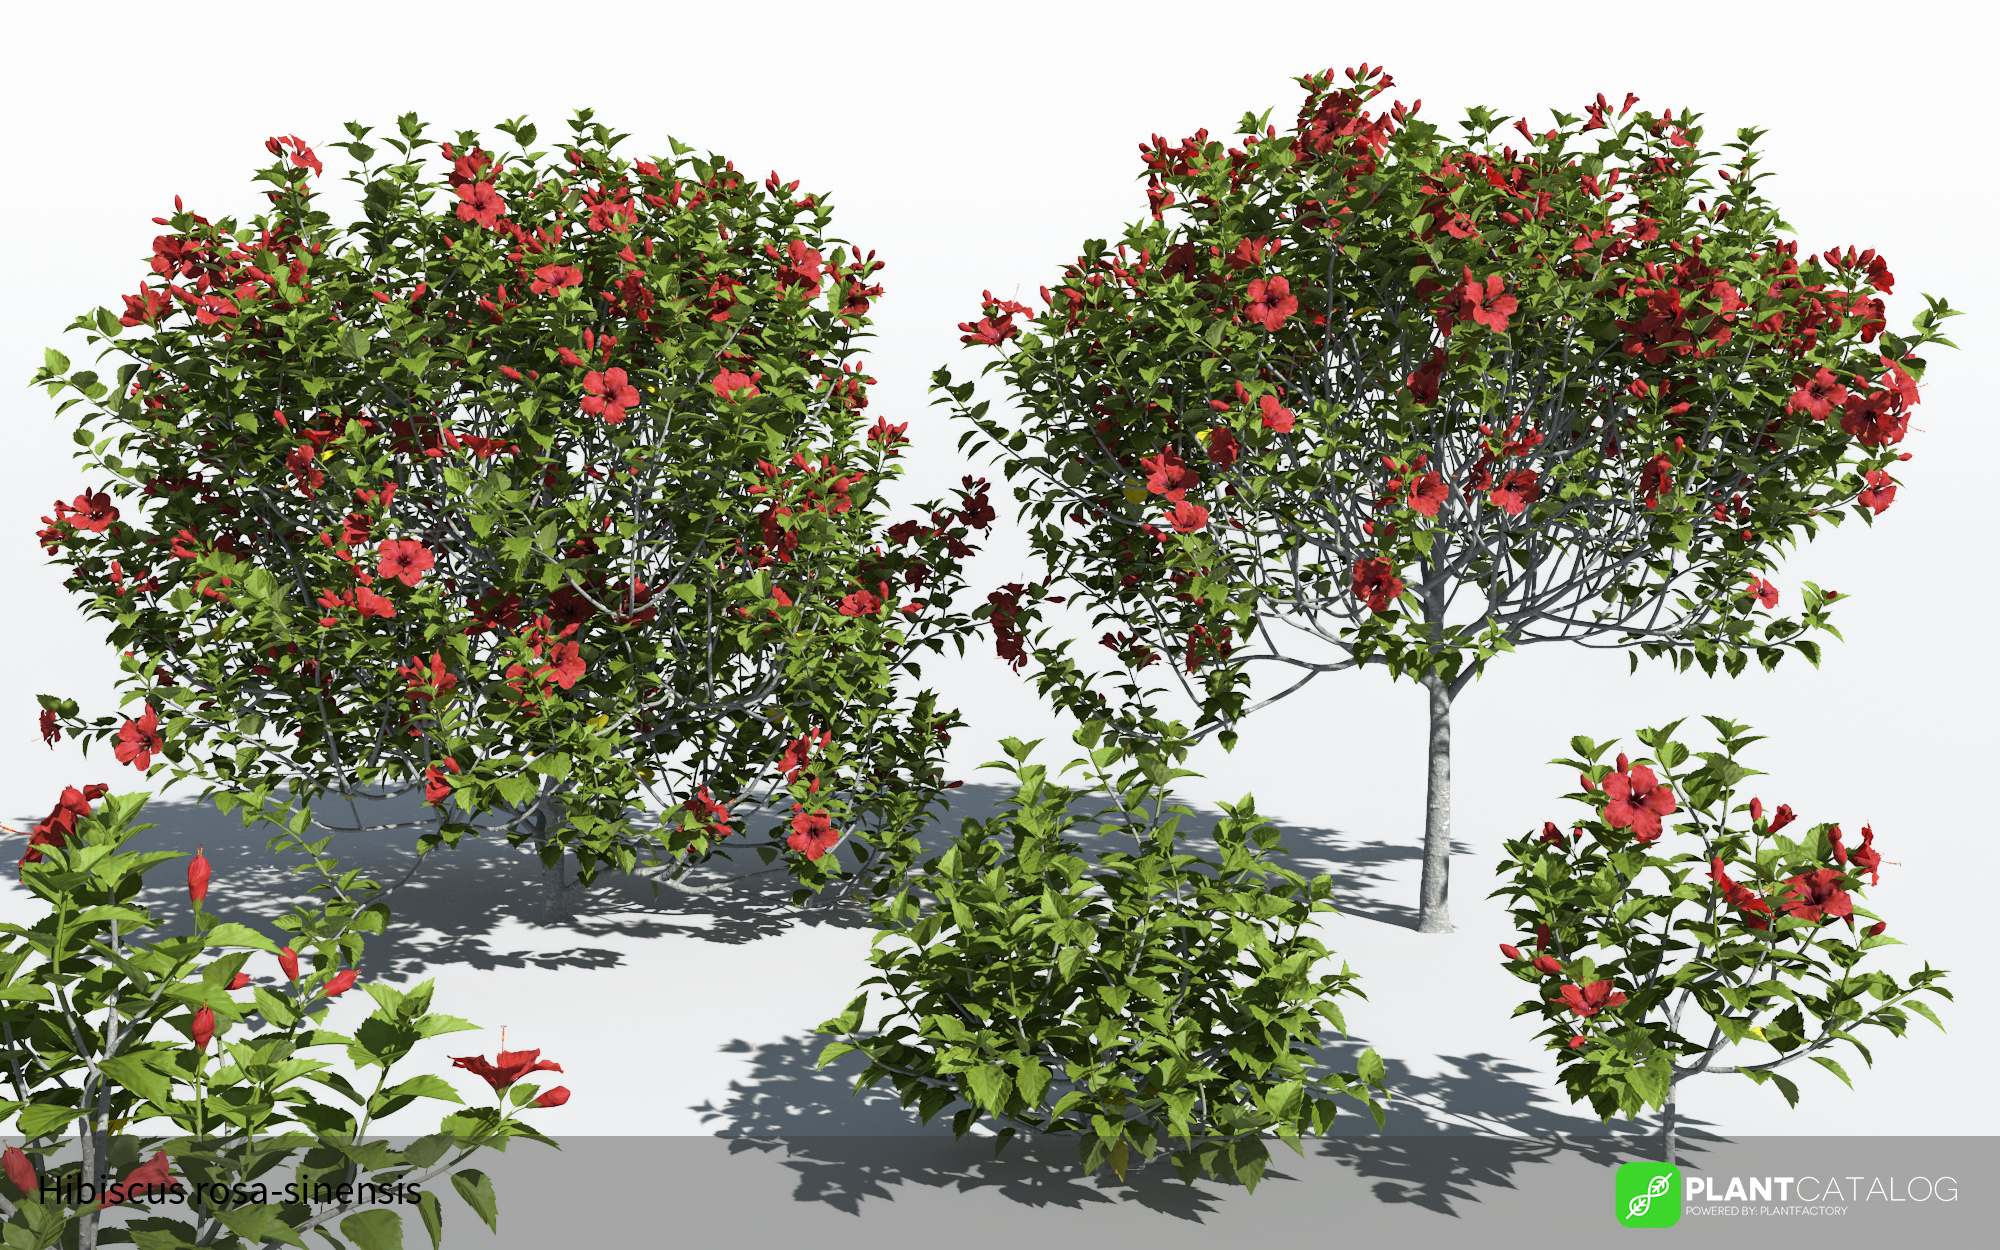 3D model of the Chinese hibiscus - Hibiscus rosa-sinensis - from the PlantCatalog, rendered in VUE